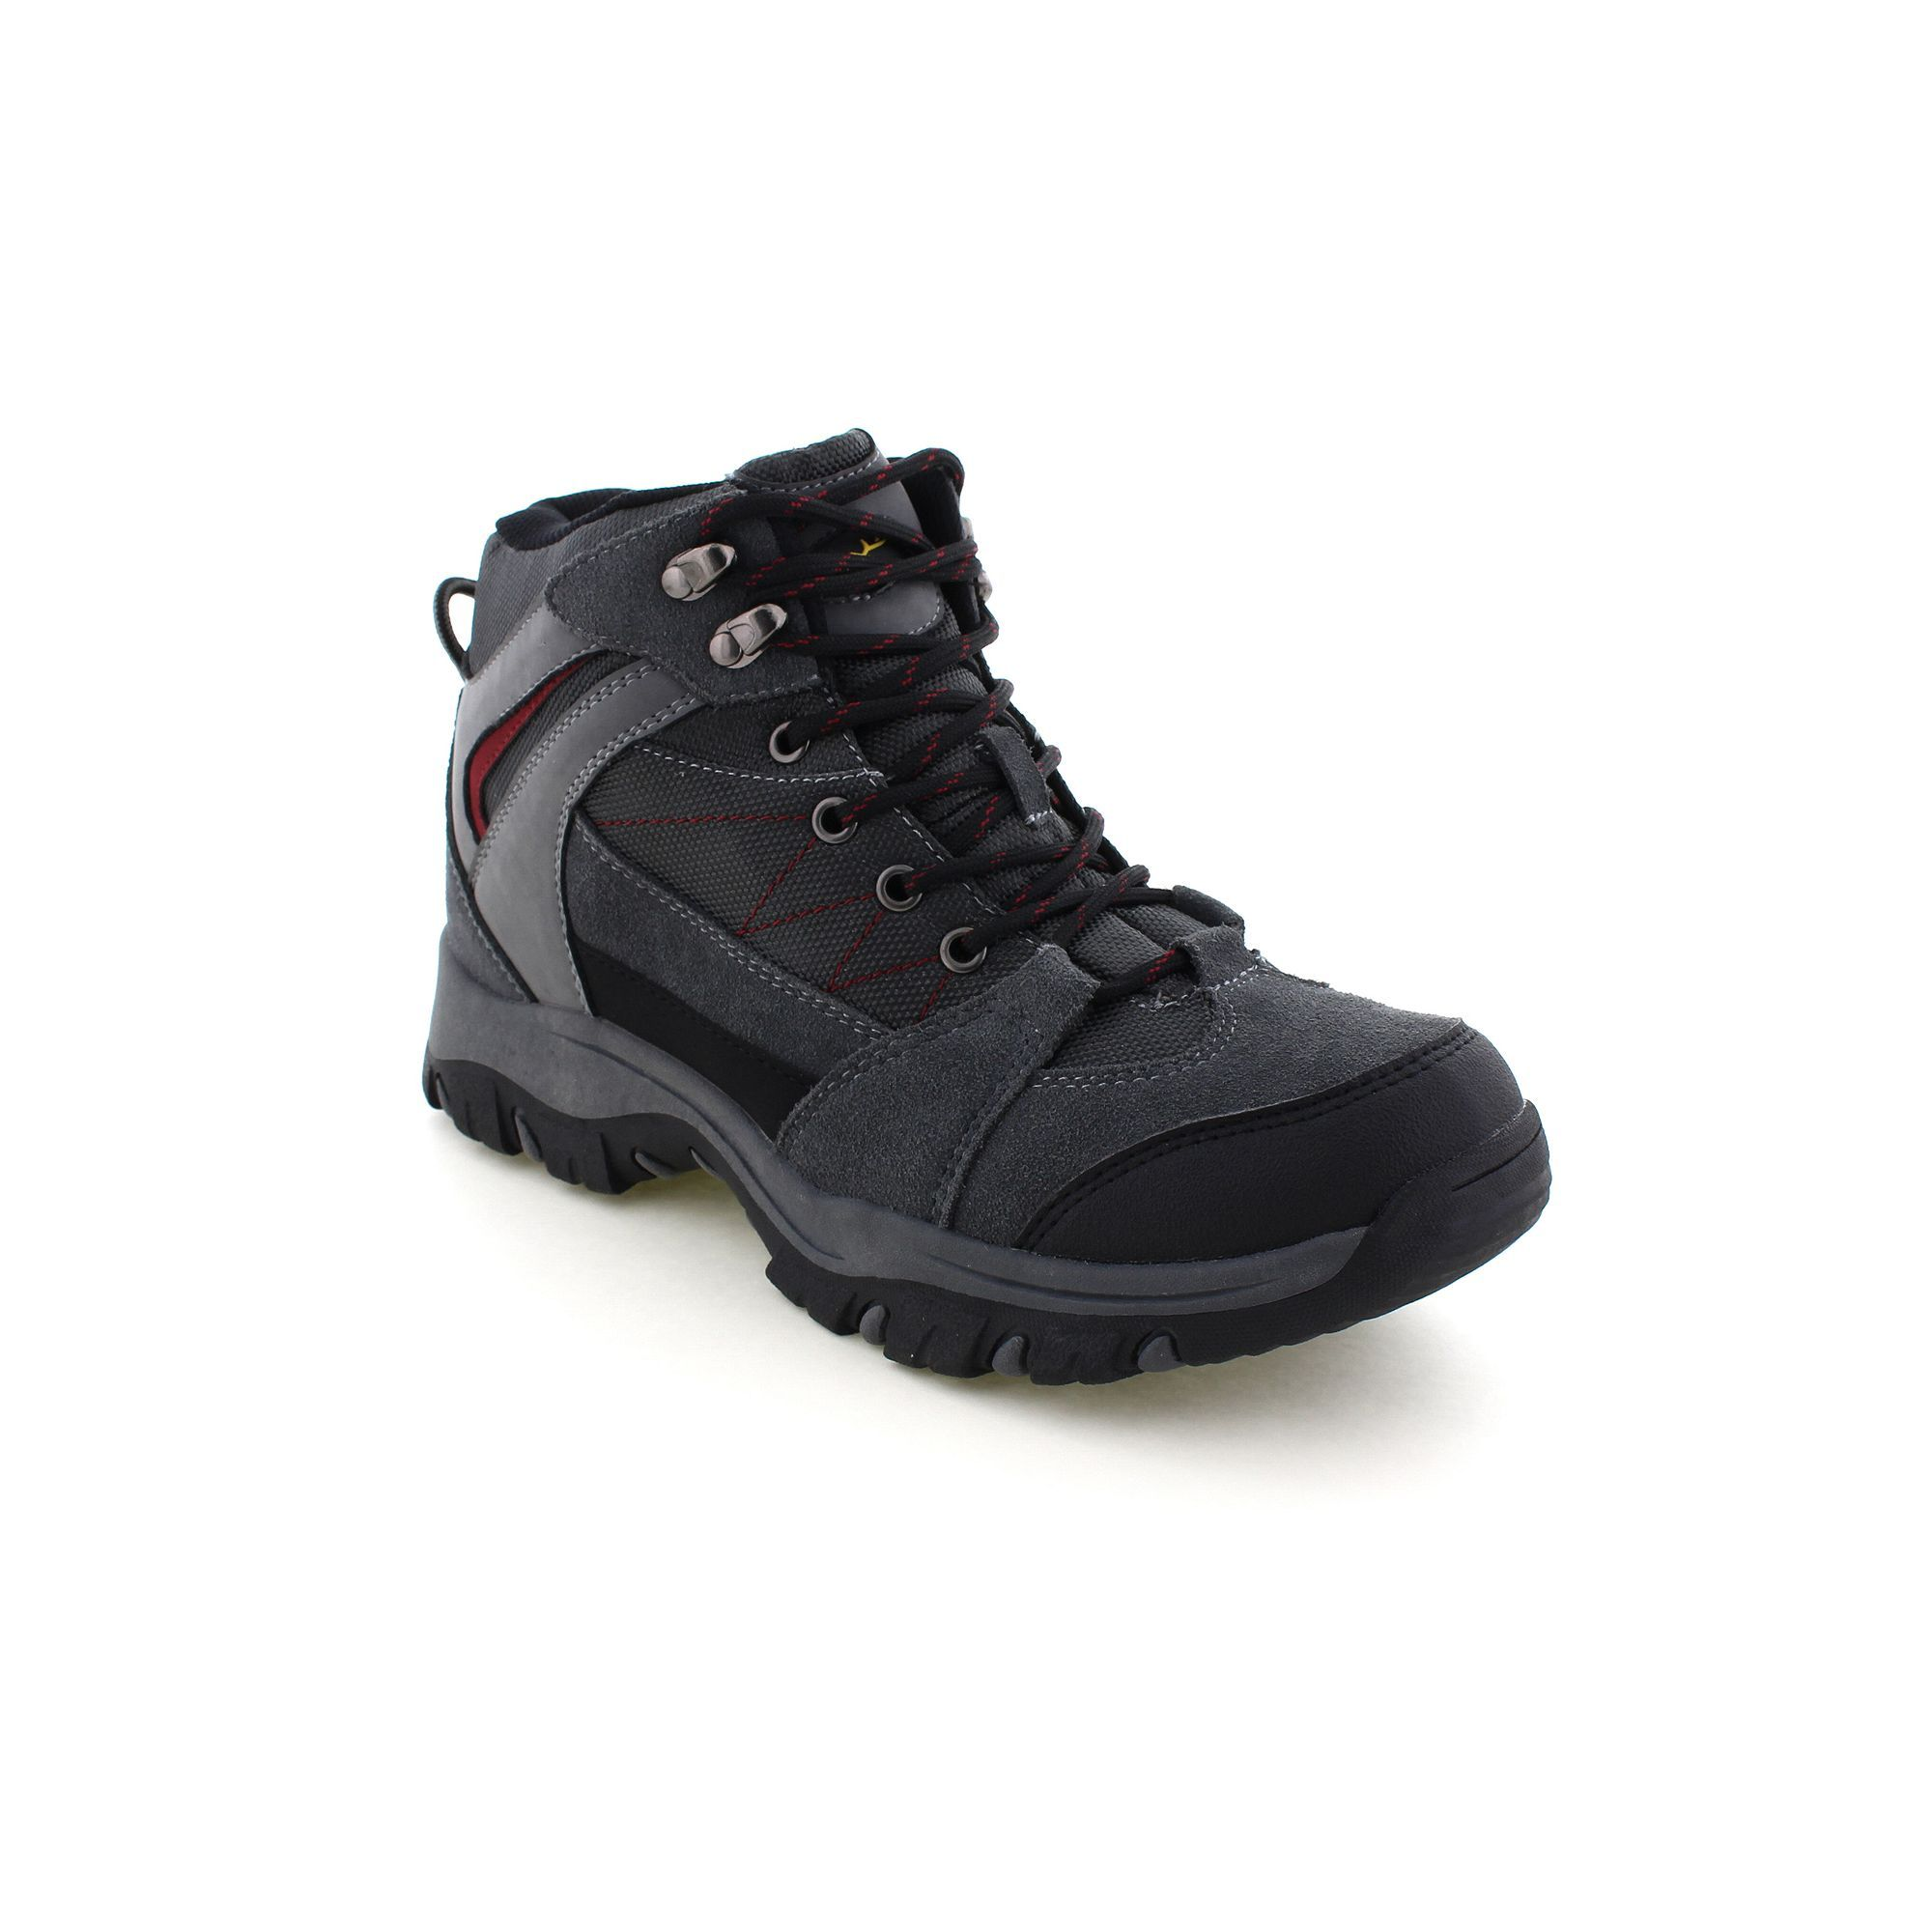 Deer Stags 902 Collection ... Anchor Men's Waterproof Hiking Boots Wfjkif9